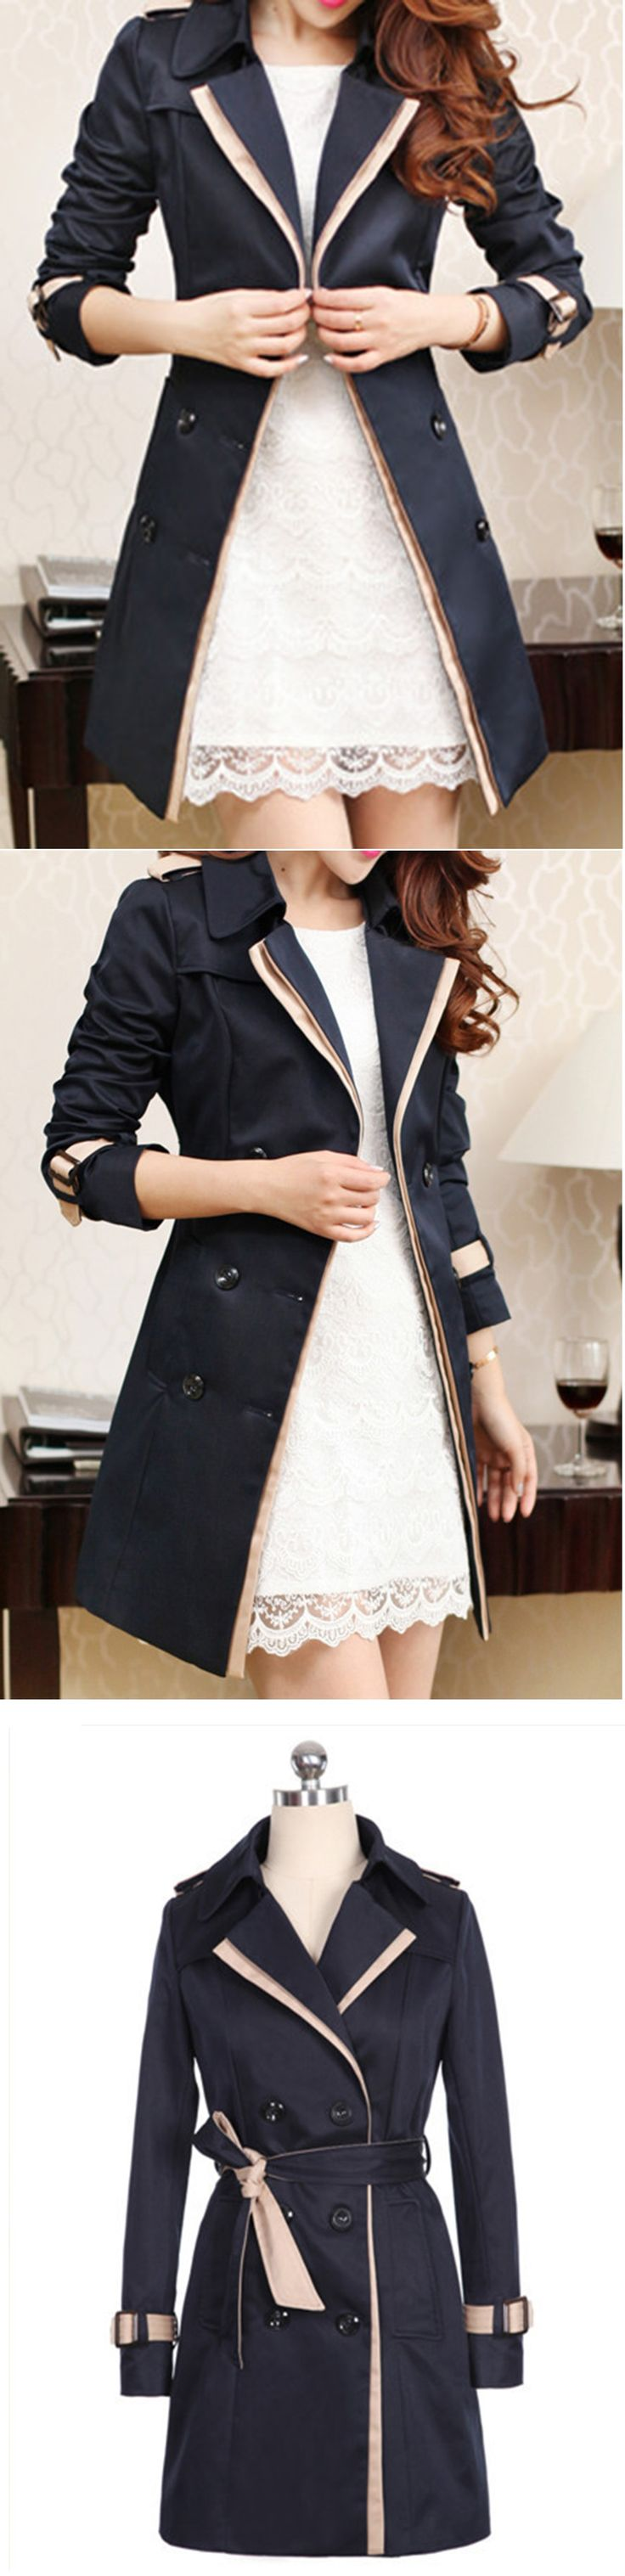 Women's Casual Long Sleeve Double Breasted Trench Coat